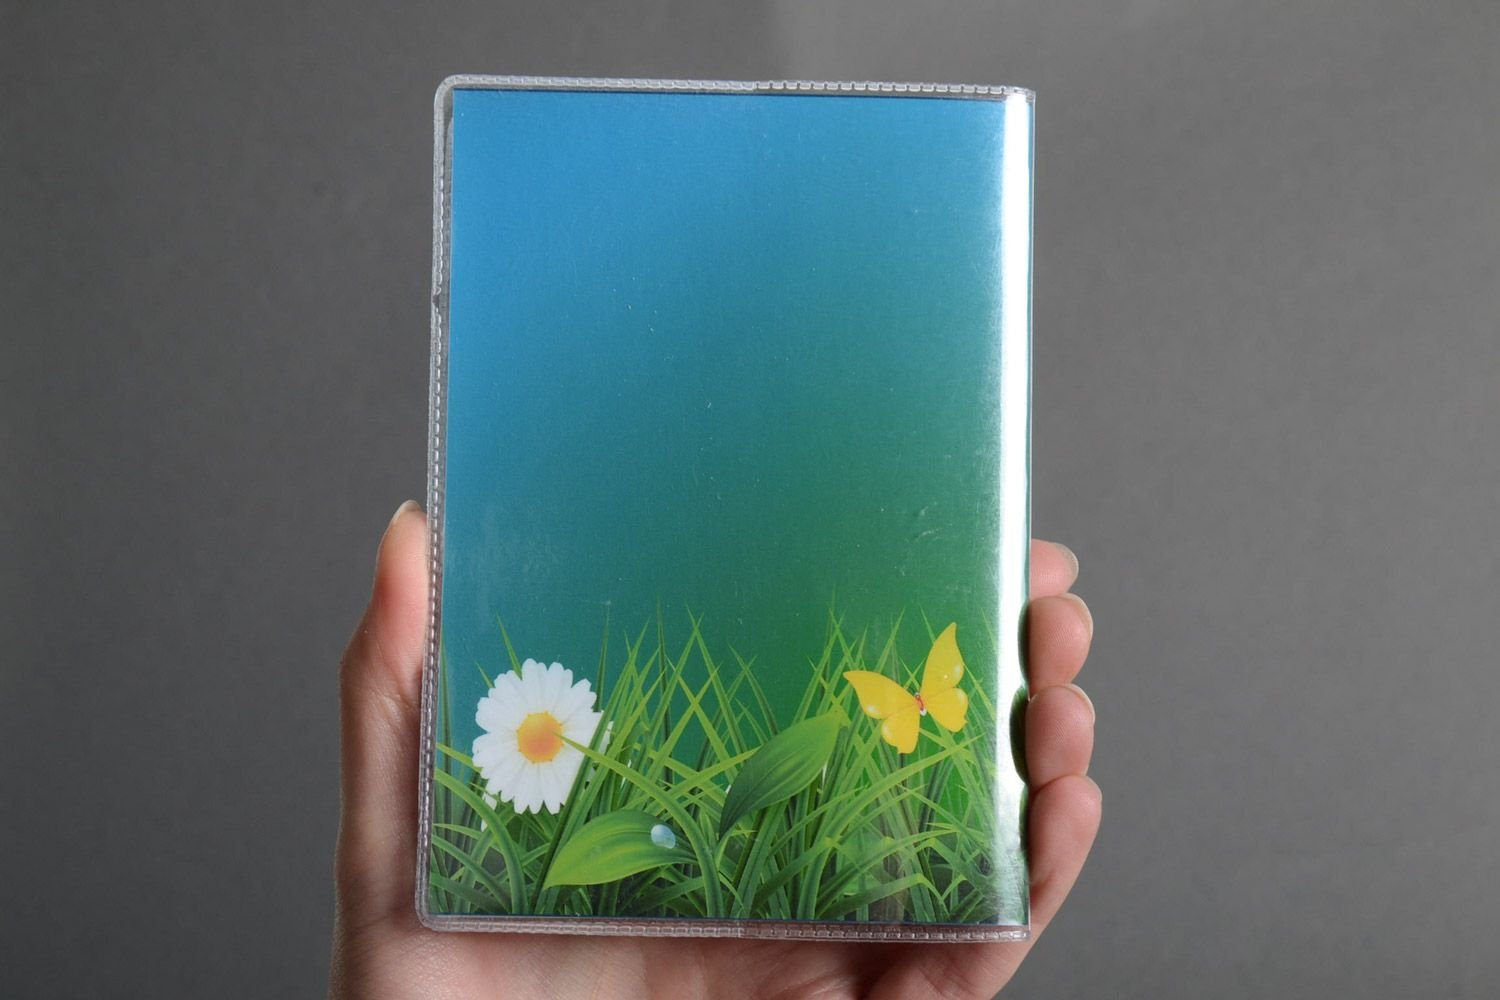 Handmade Plastic Passport Cover With Floral Photo Print Gift Idea For Girl